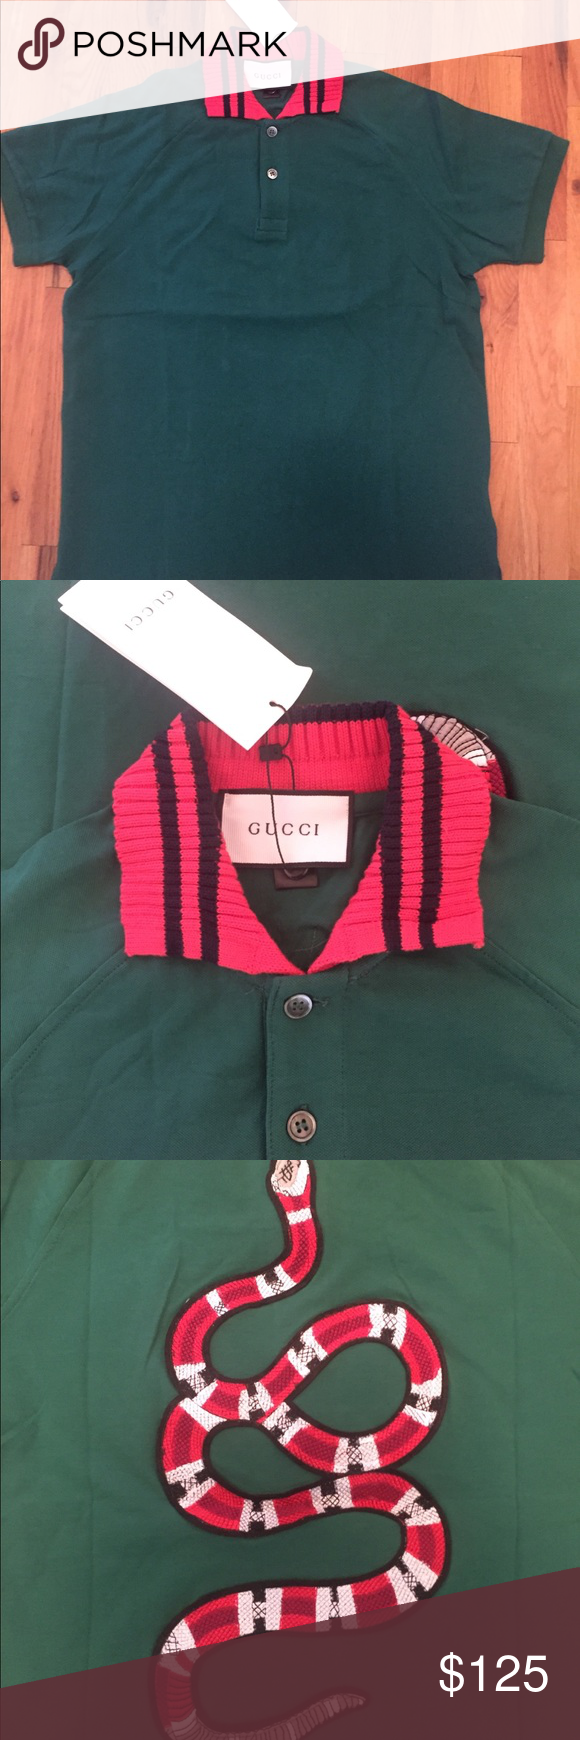 a816f6a7de11 Gucci Snake Embroidery Web Collar Polo Size Large. New With Tags. Green Red Shirts  Polos